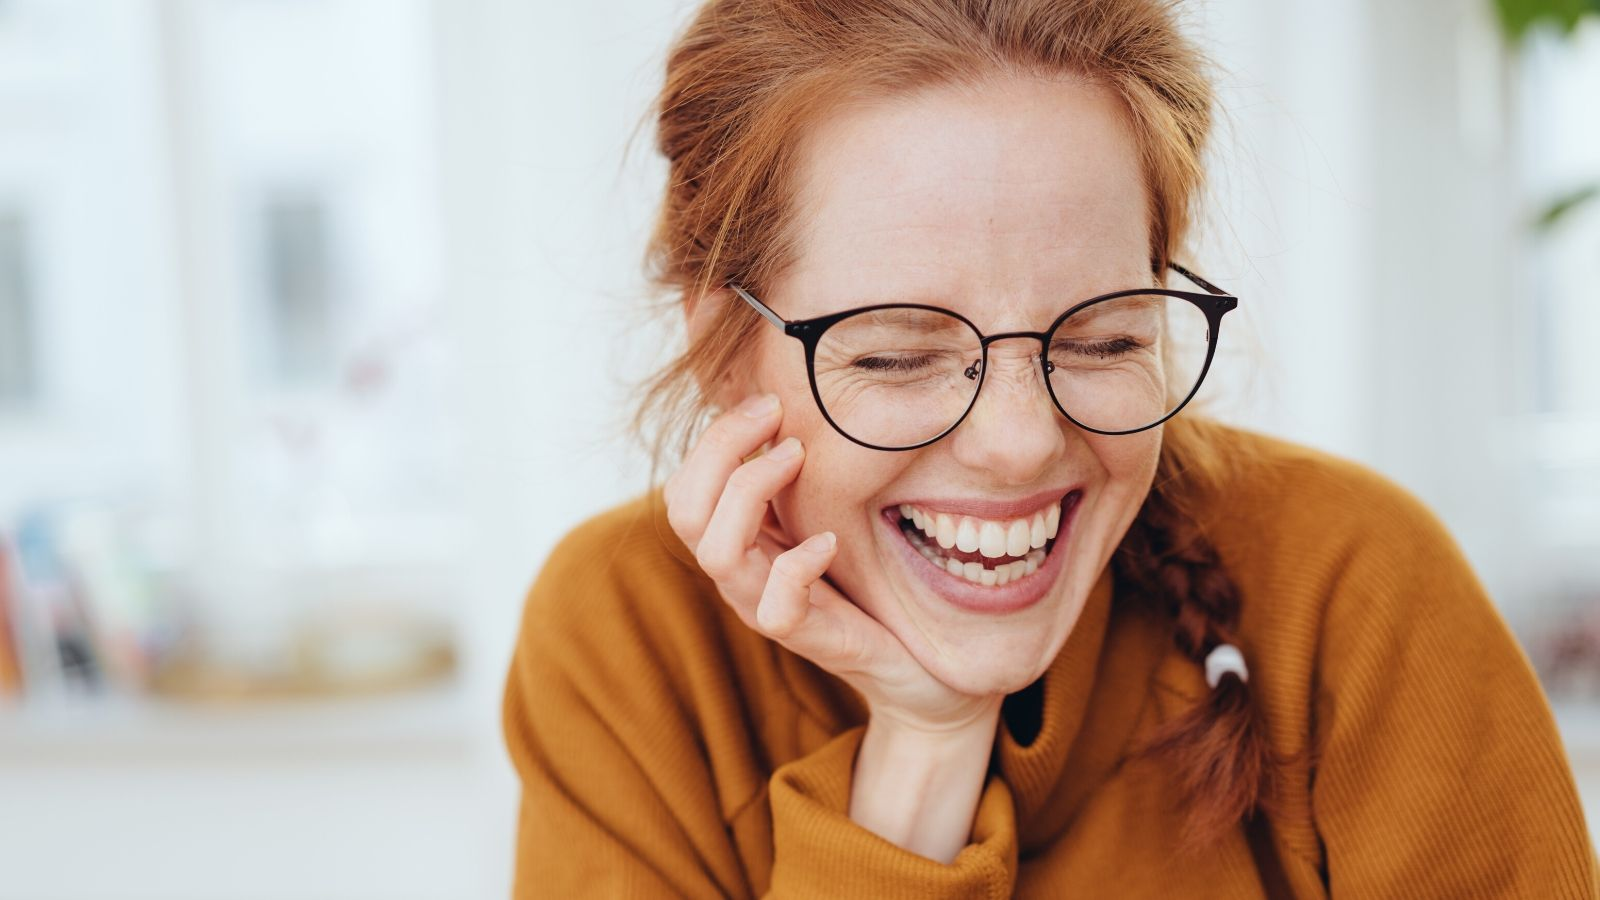 Princeton study says this one activity makes you just as happy as dining out